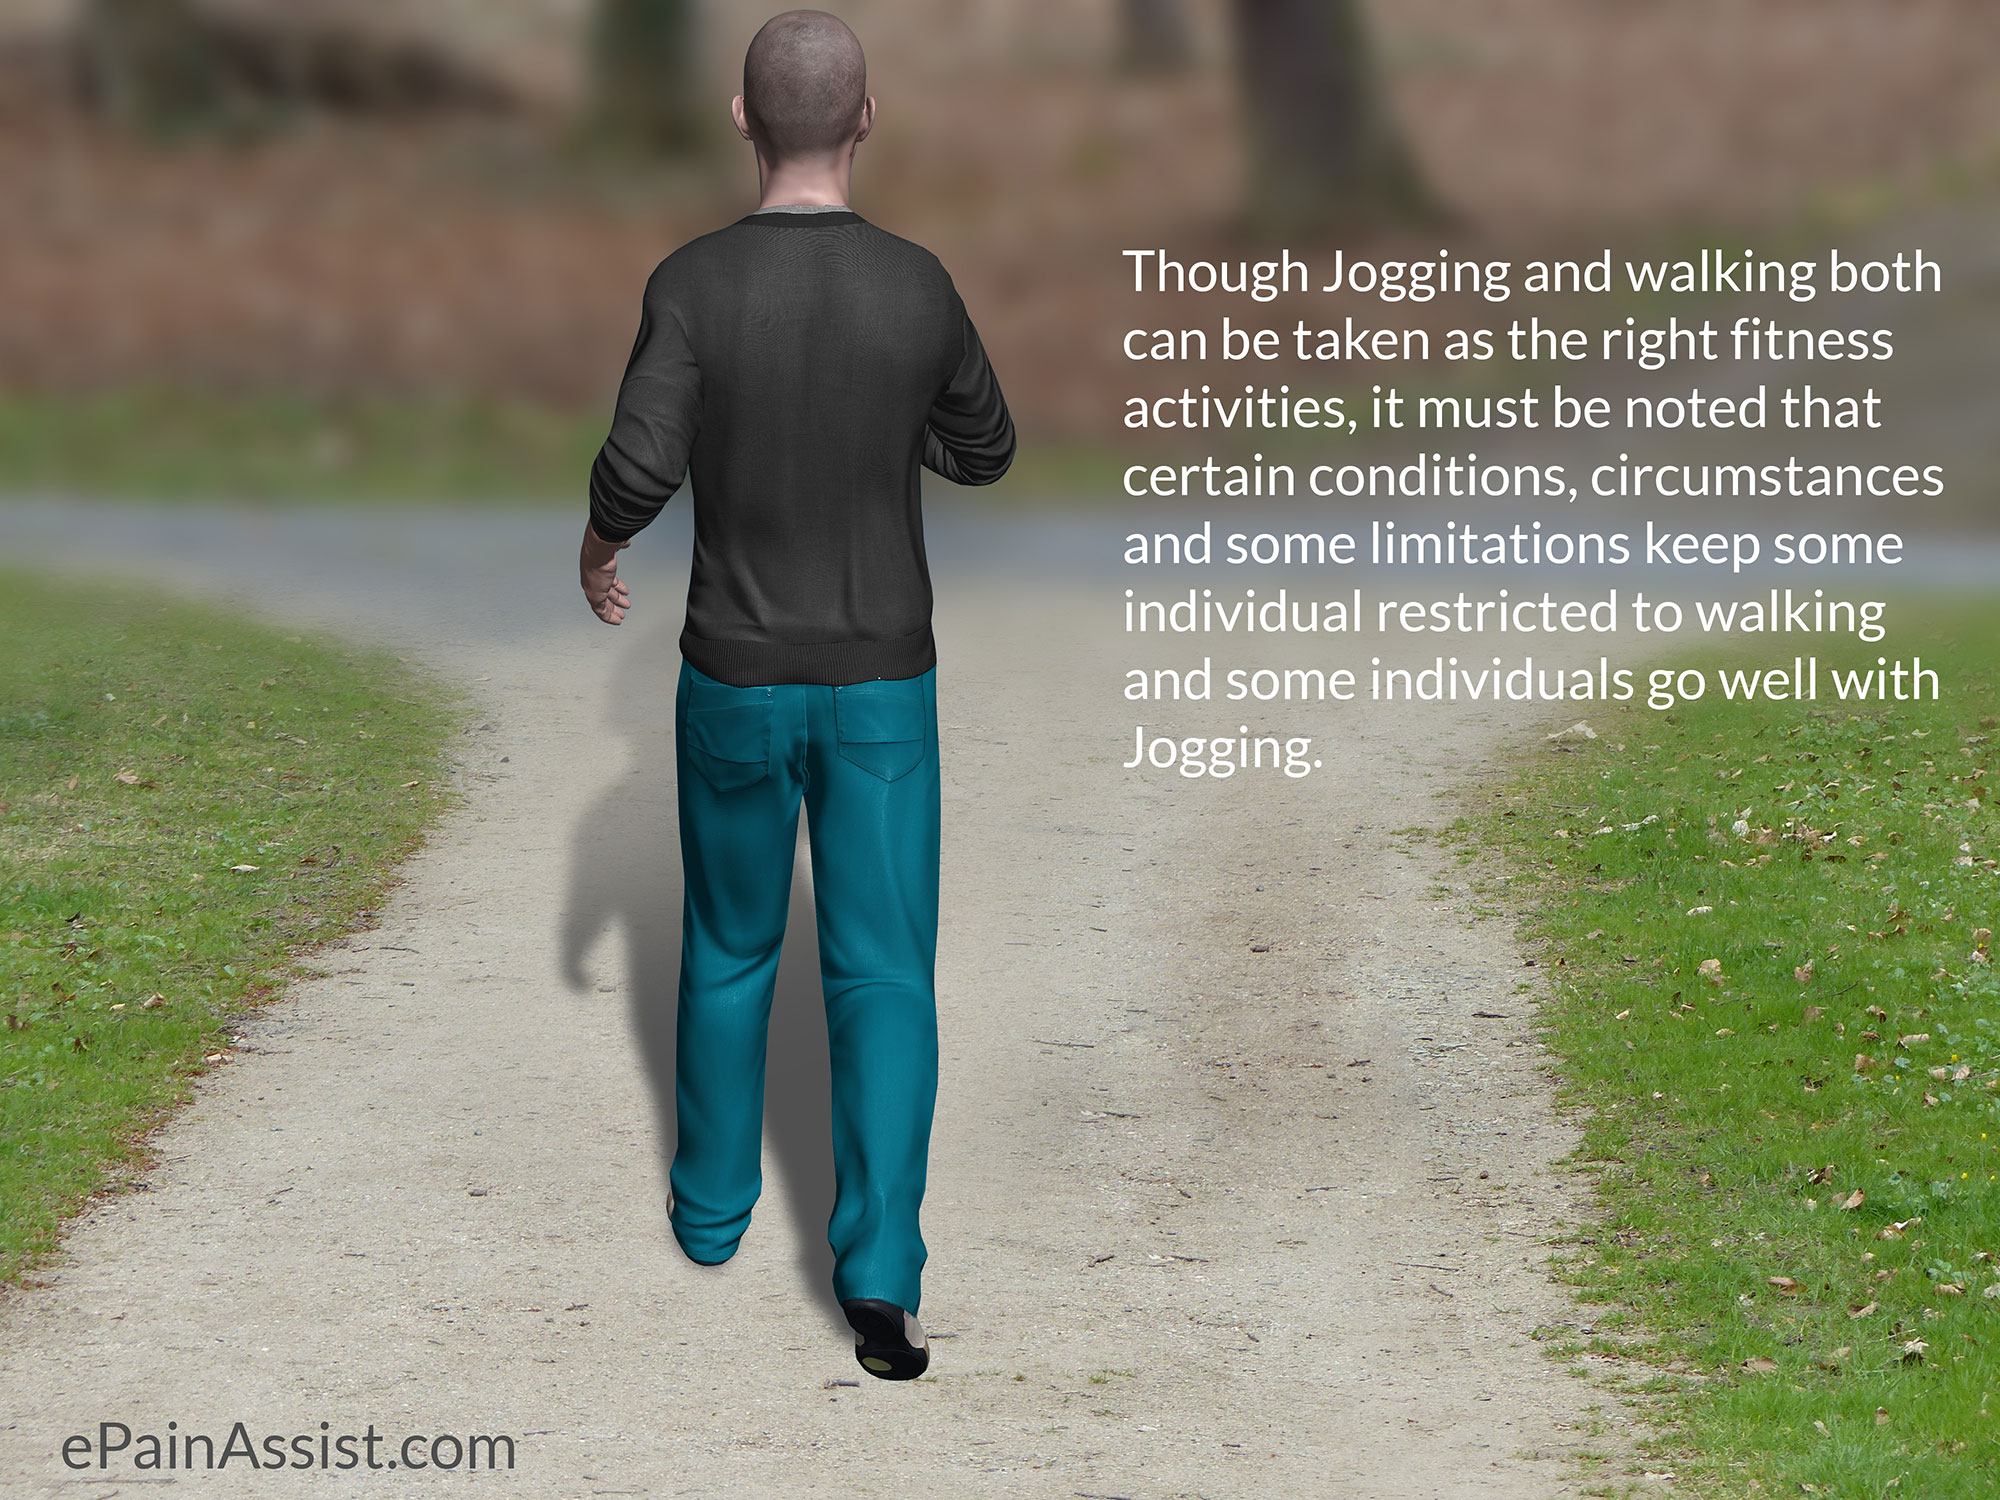 Walking or Jogging-Which is Better?